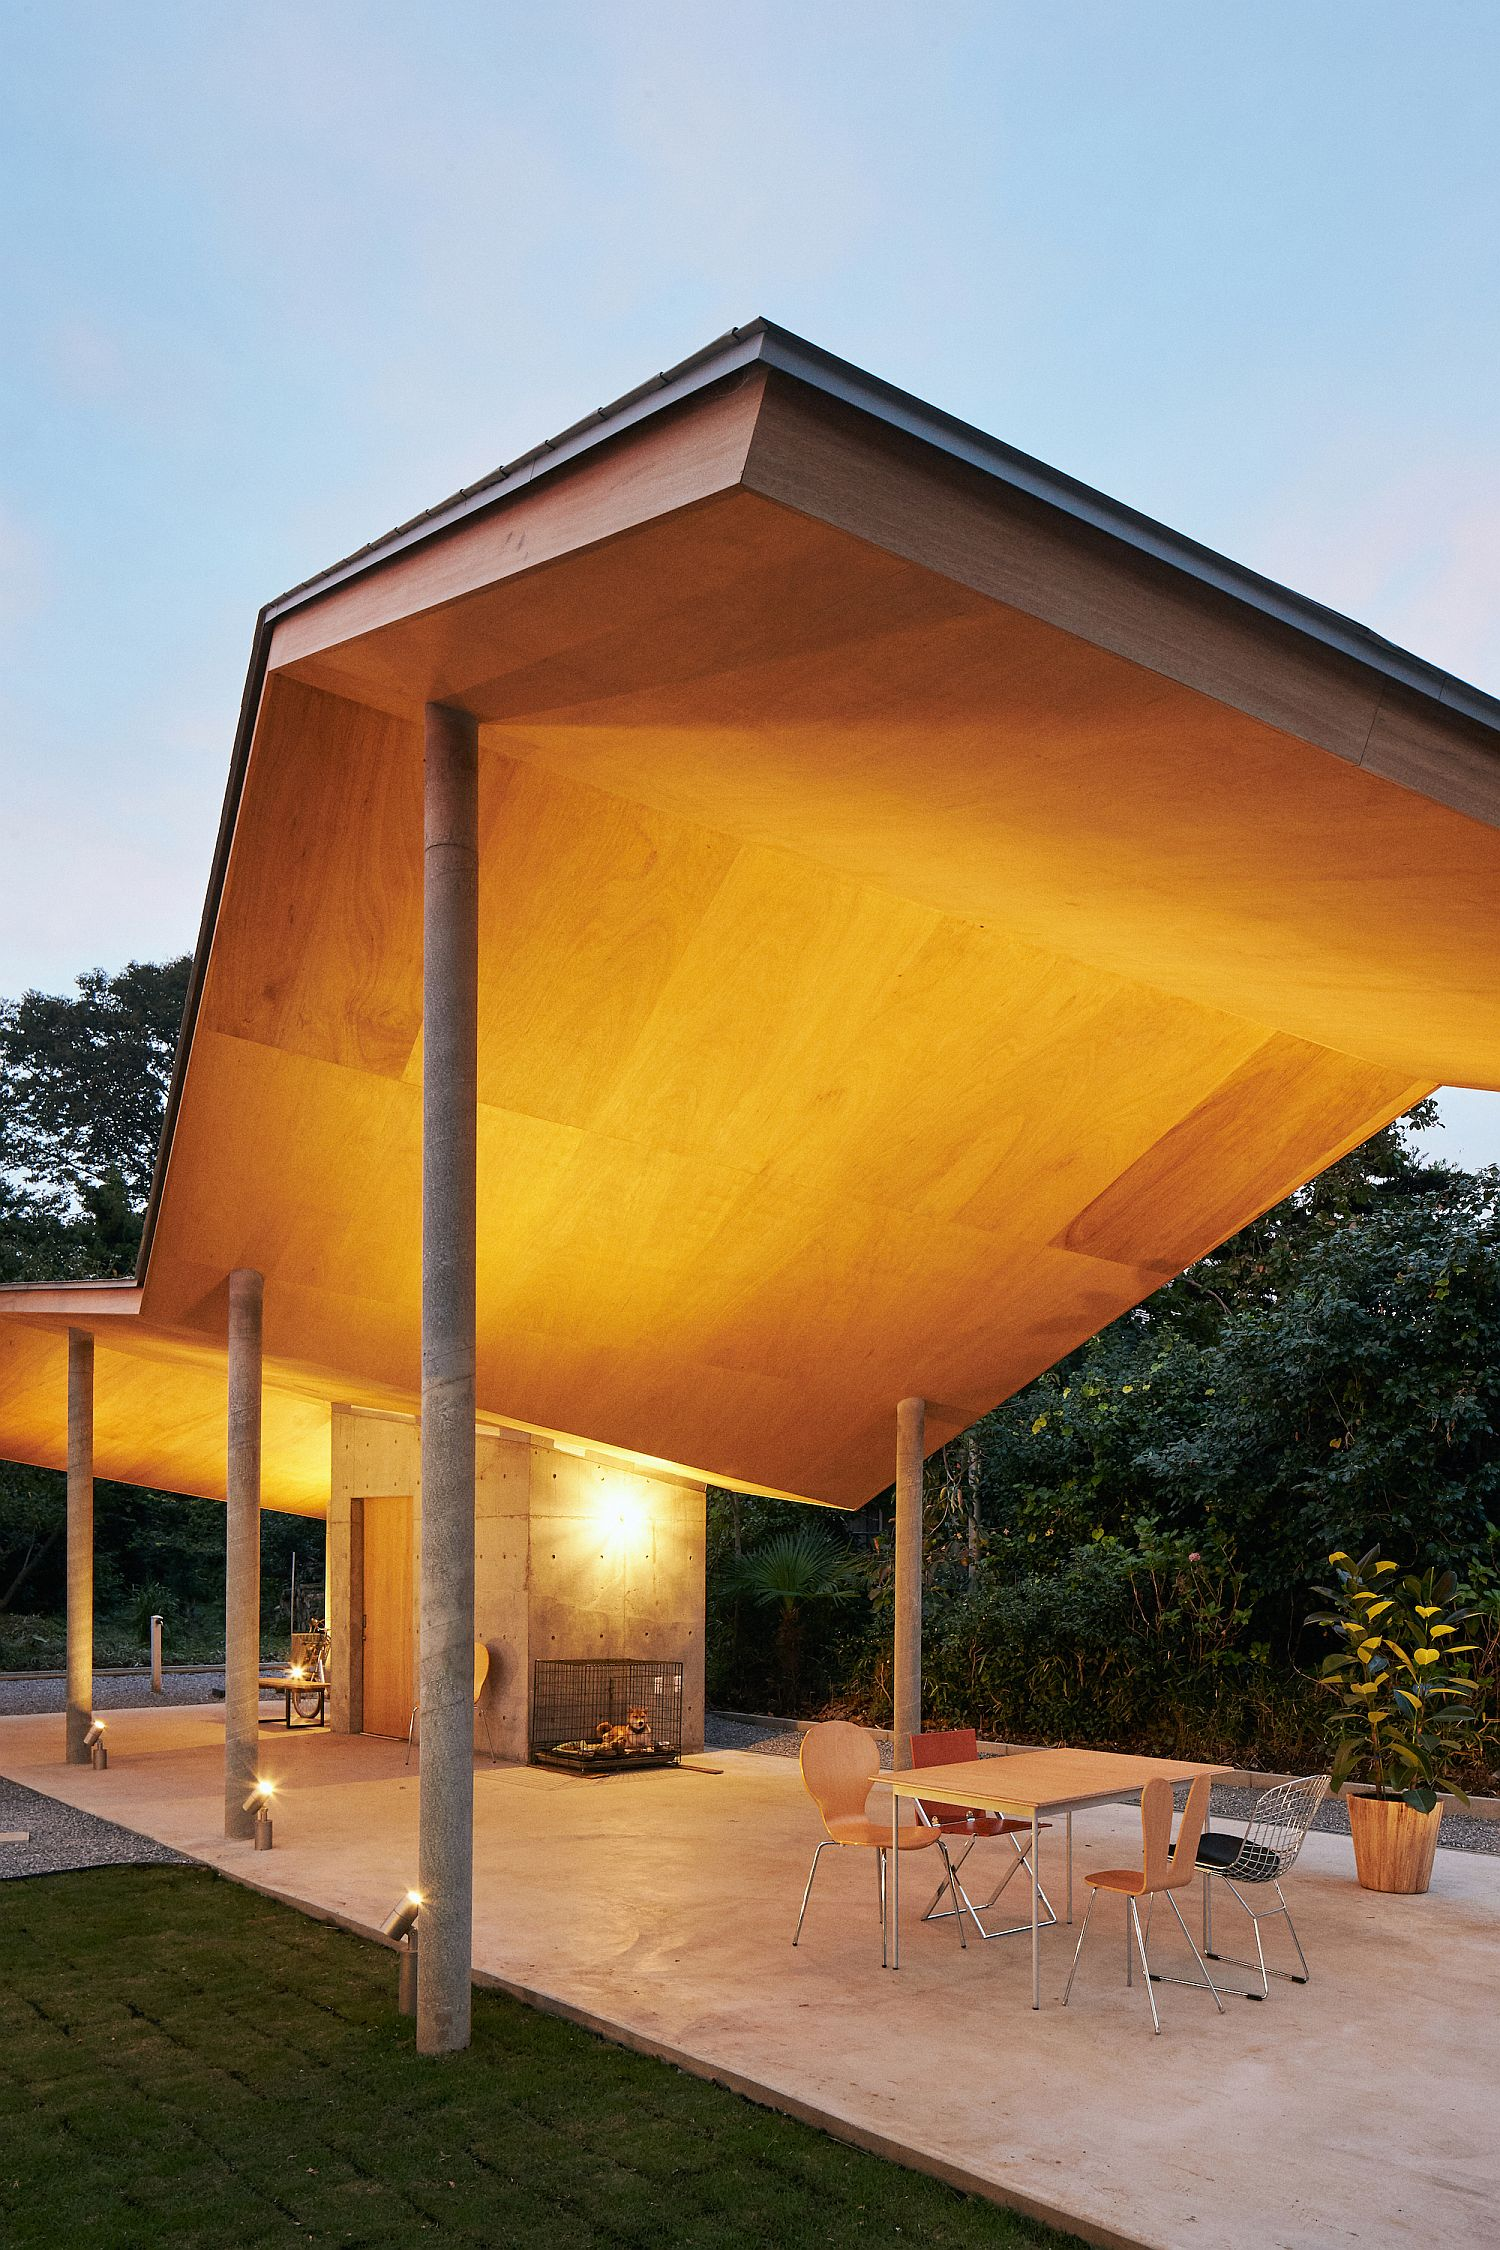 Lighting enhances the visual appeal of the wavy roof form